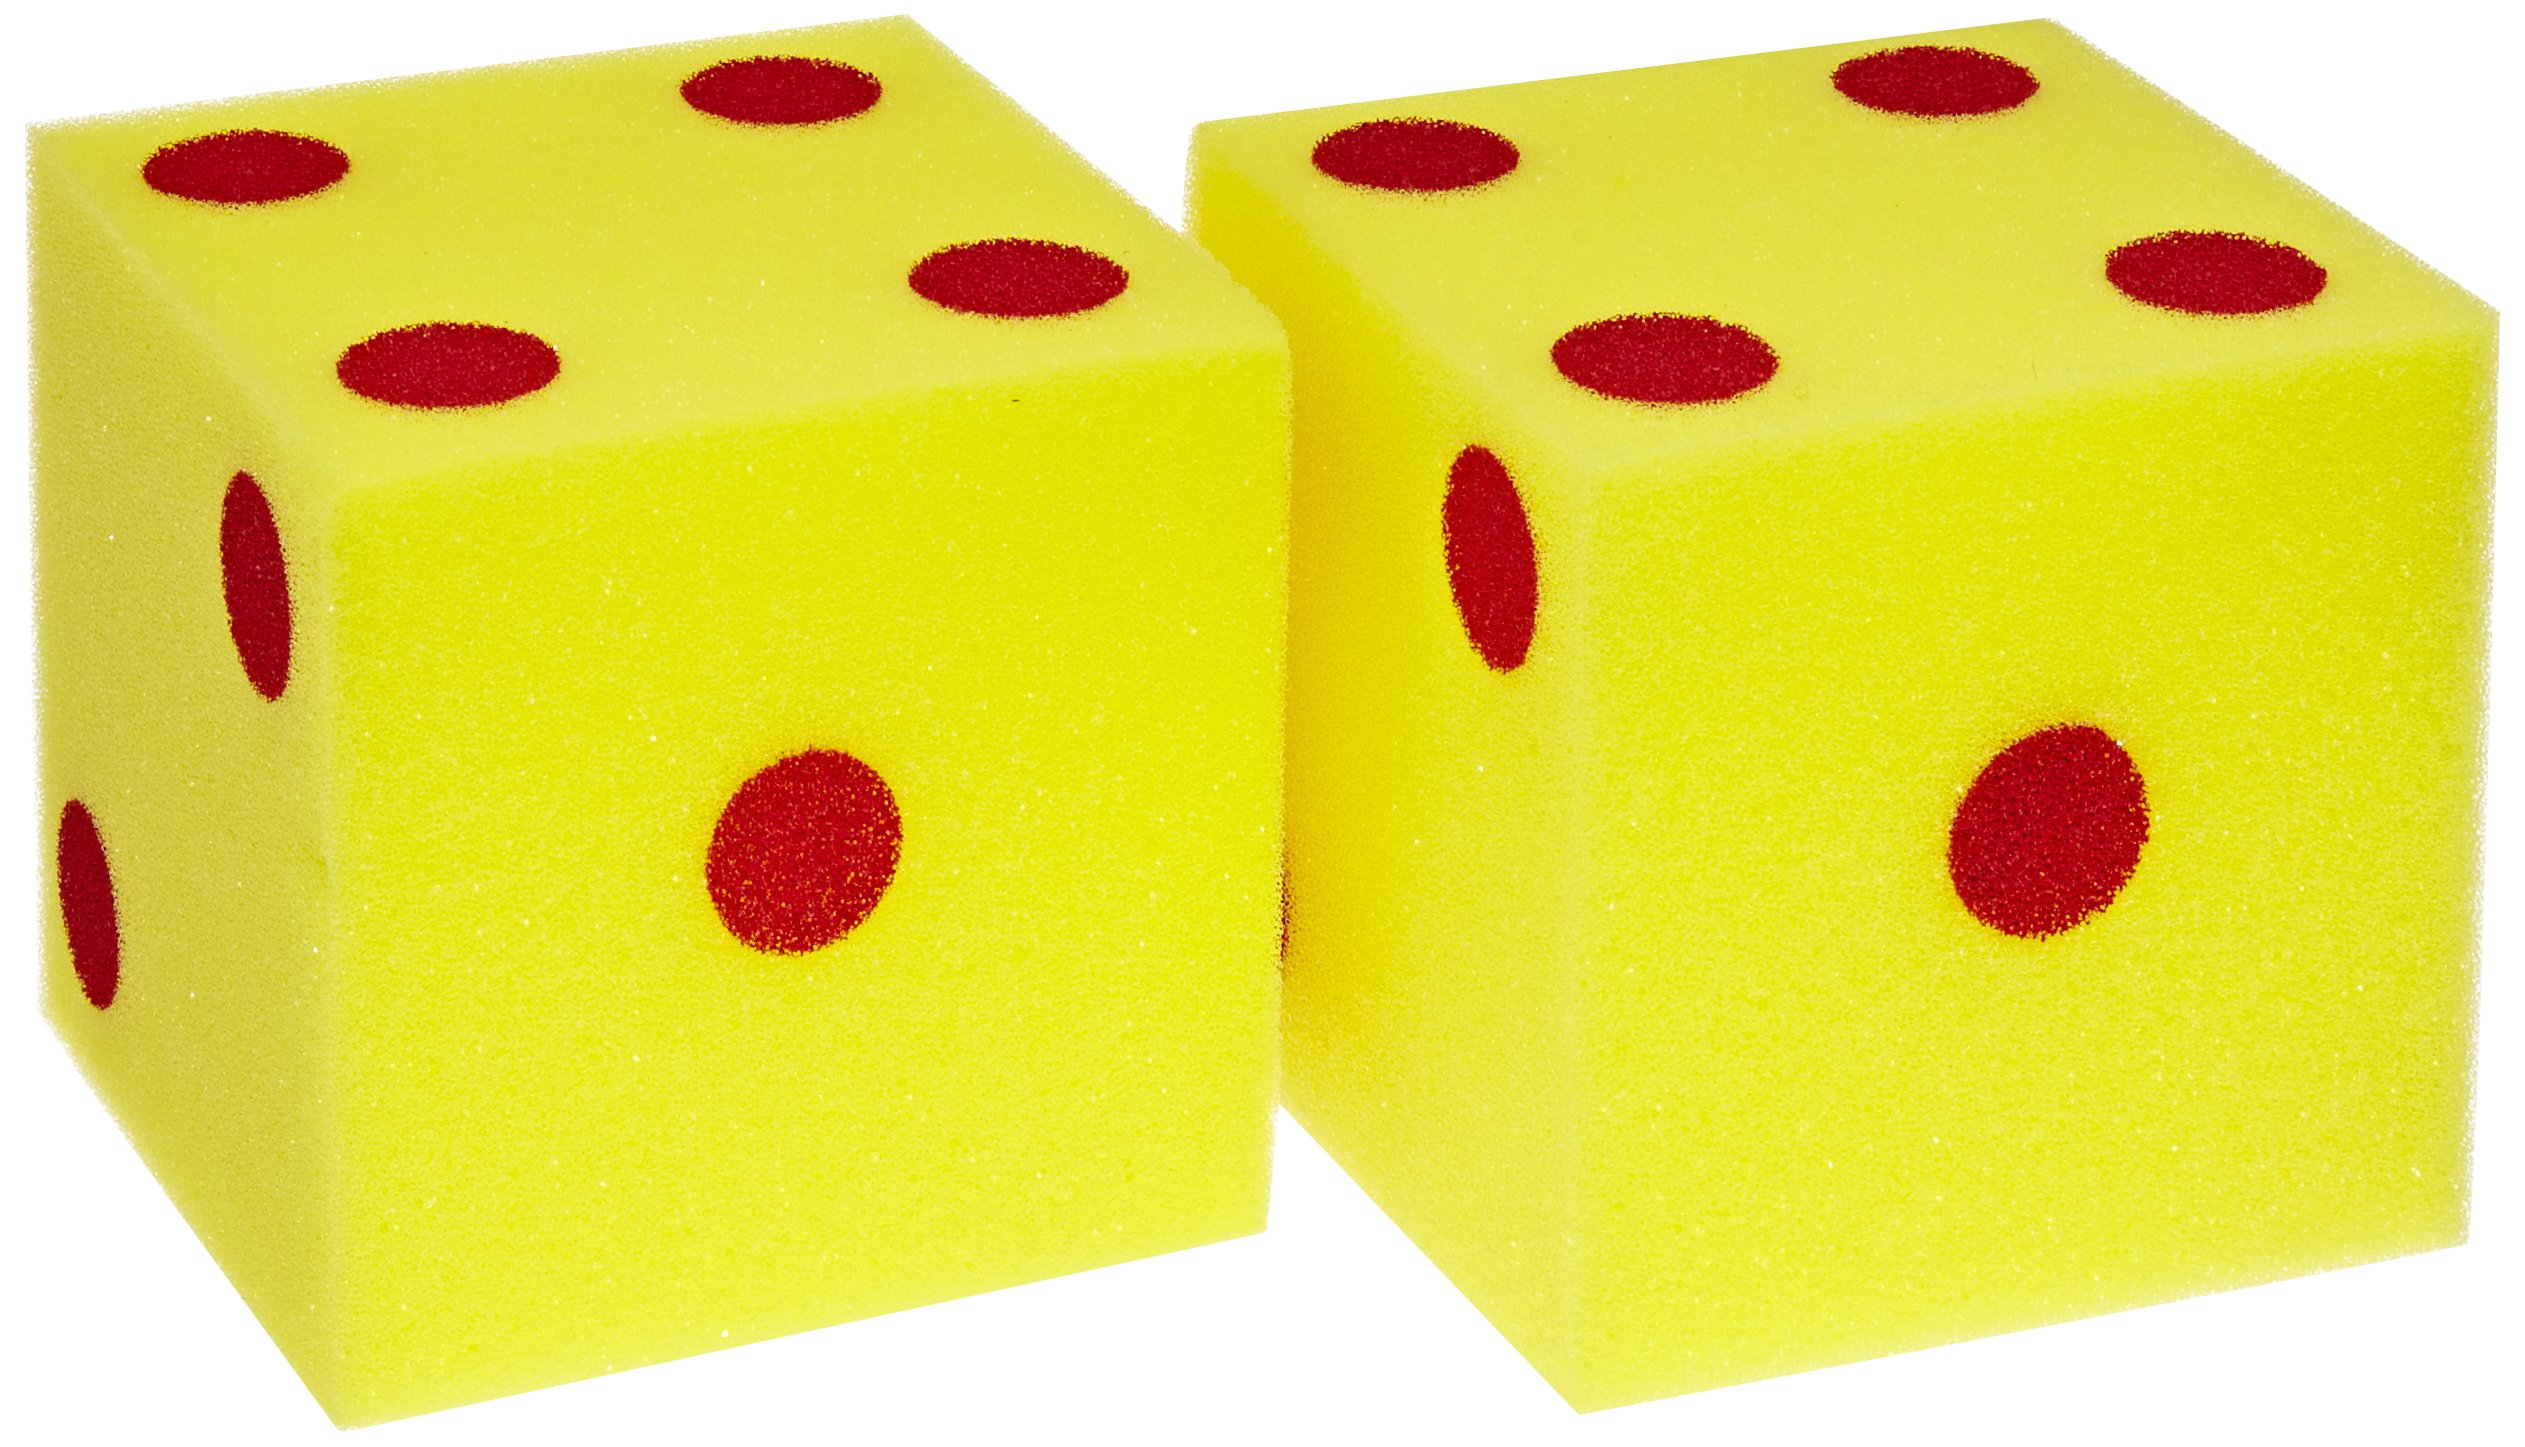 SI Manufacturing Giant Foam Dot Dice, 1 Pair by SI Manufacturing